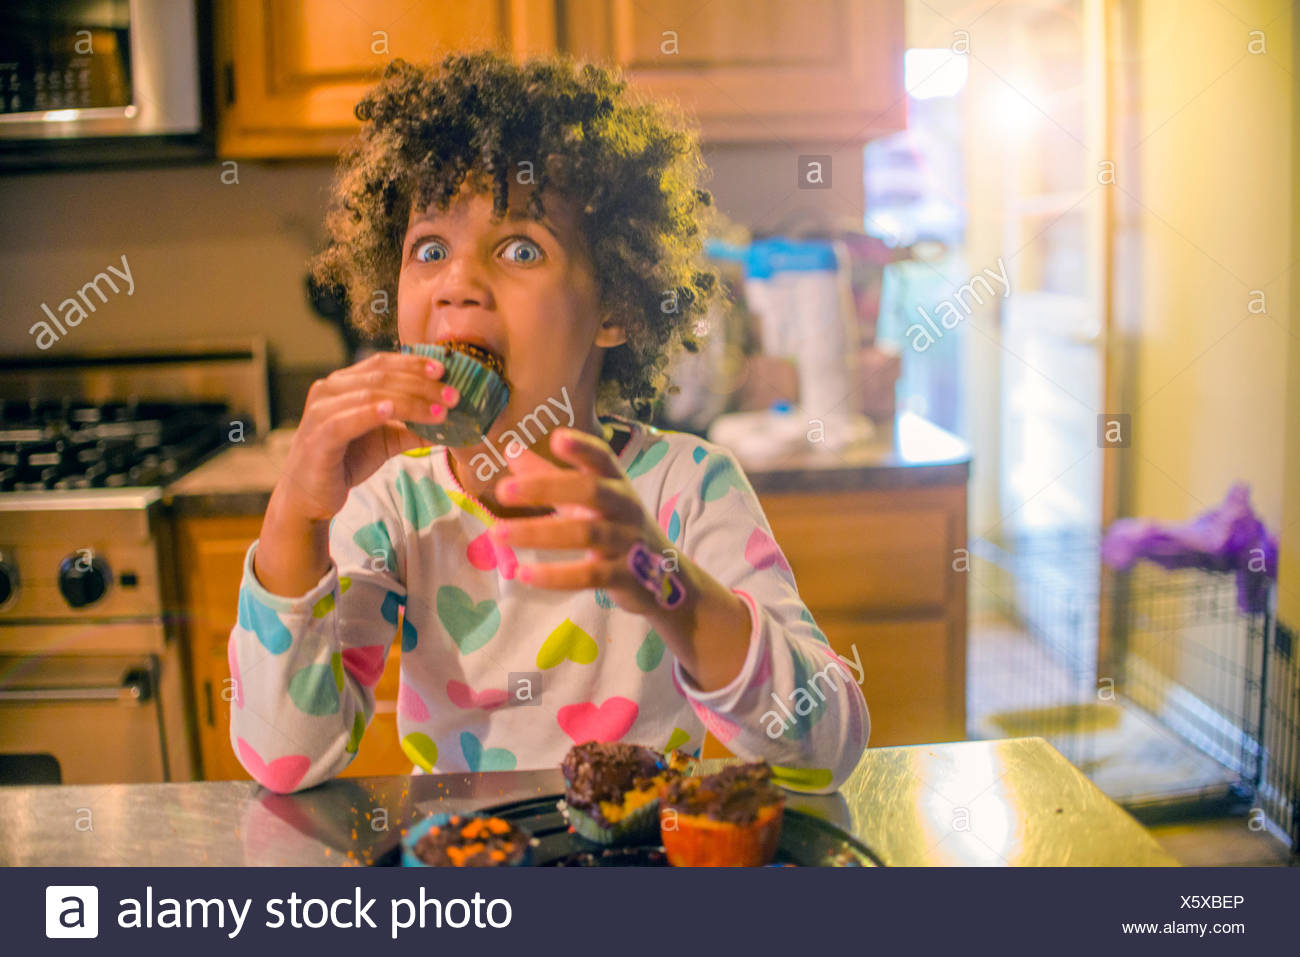 Portrait de surprise girl eating cupcakes au comptoir de la cuisine Photo Stock